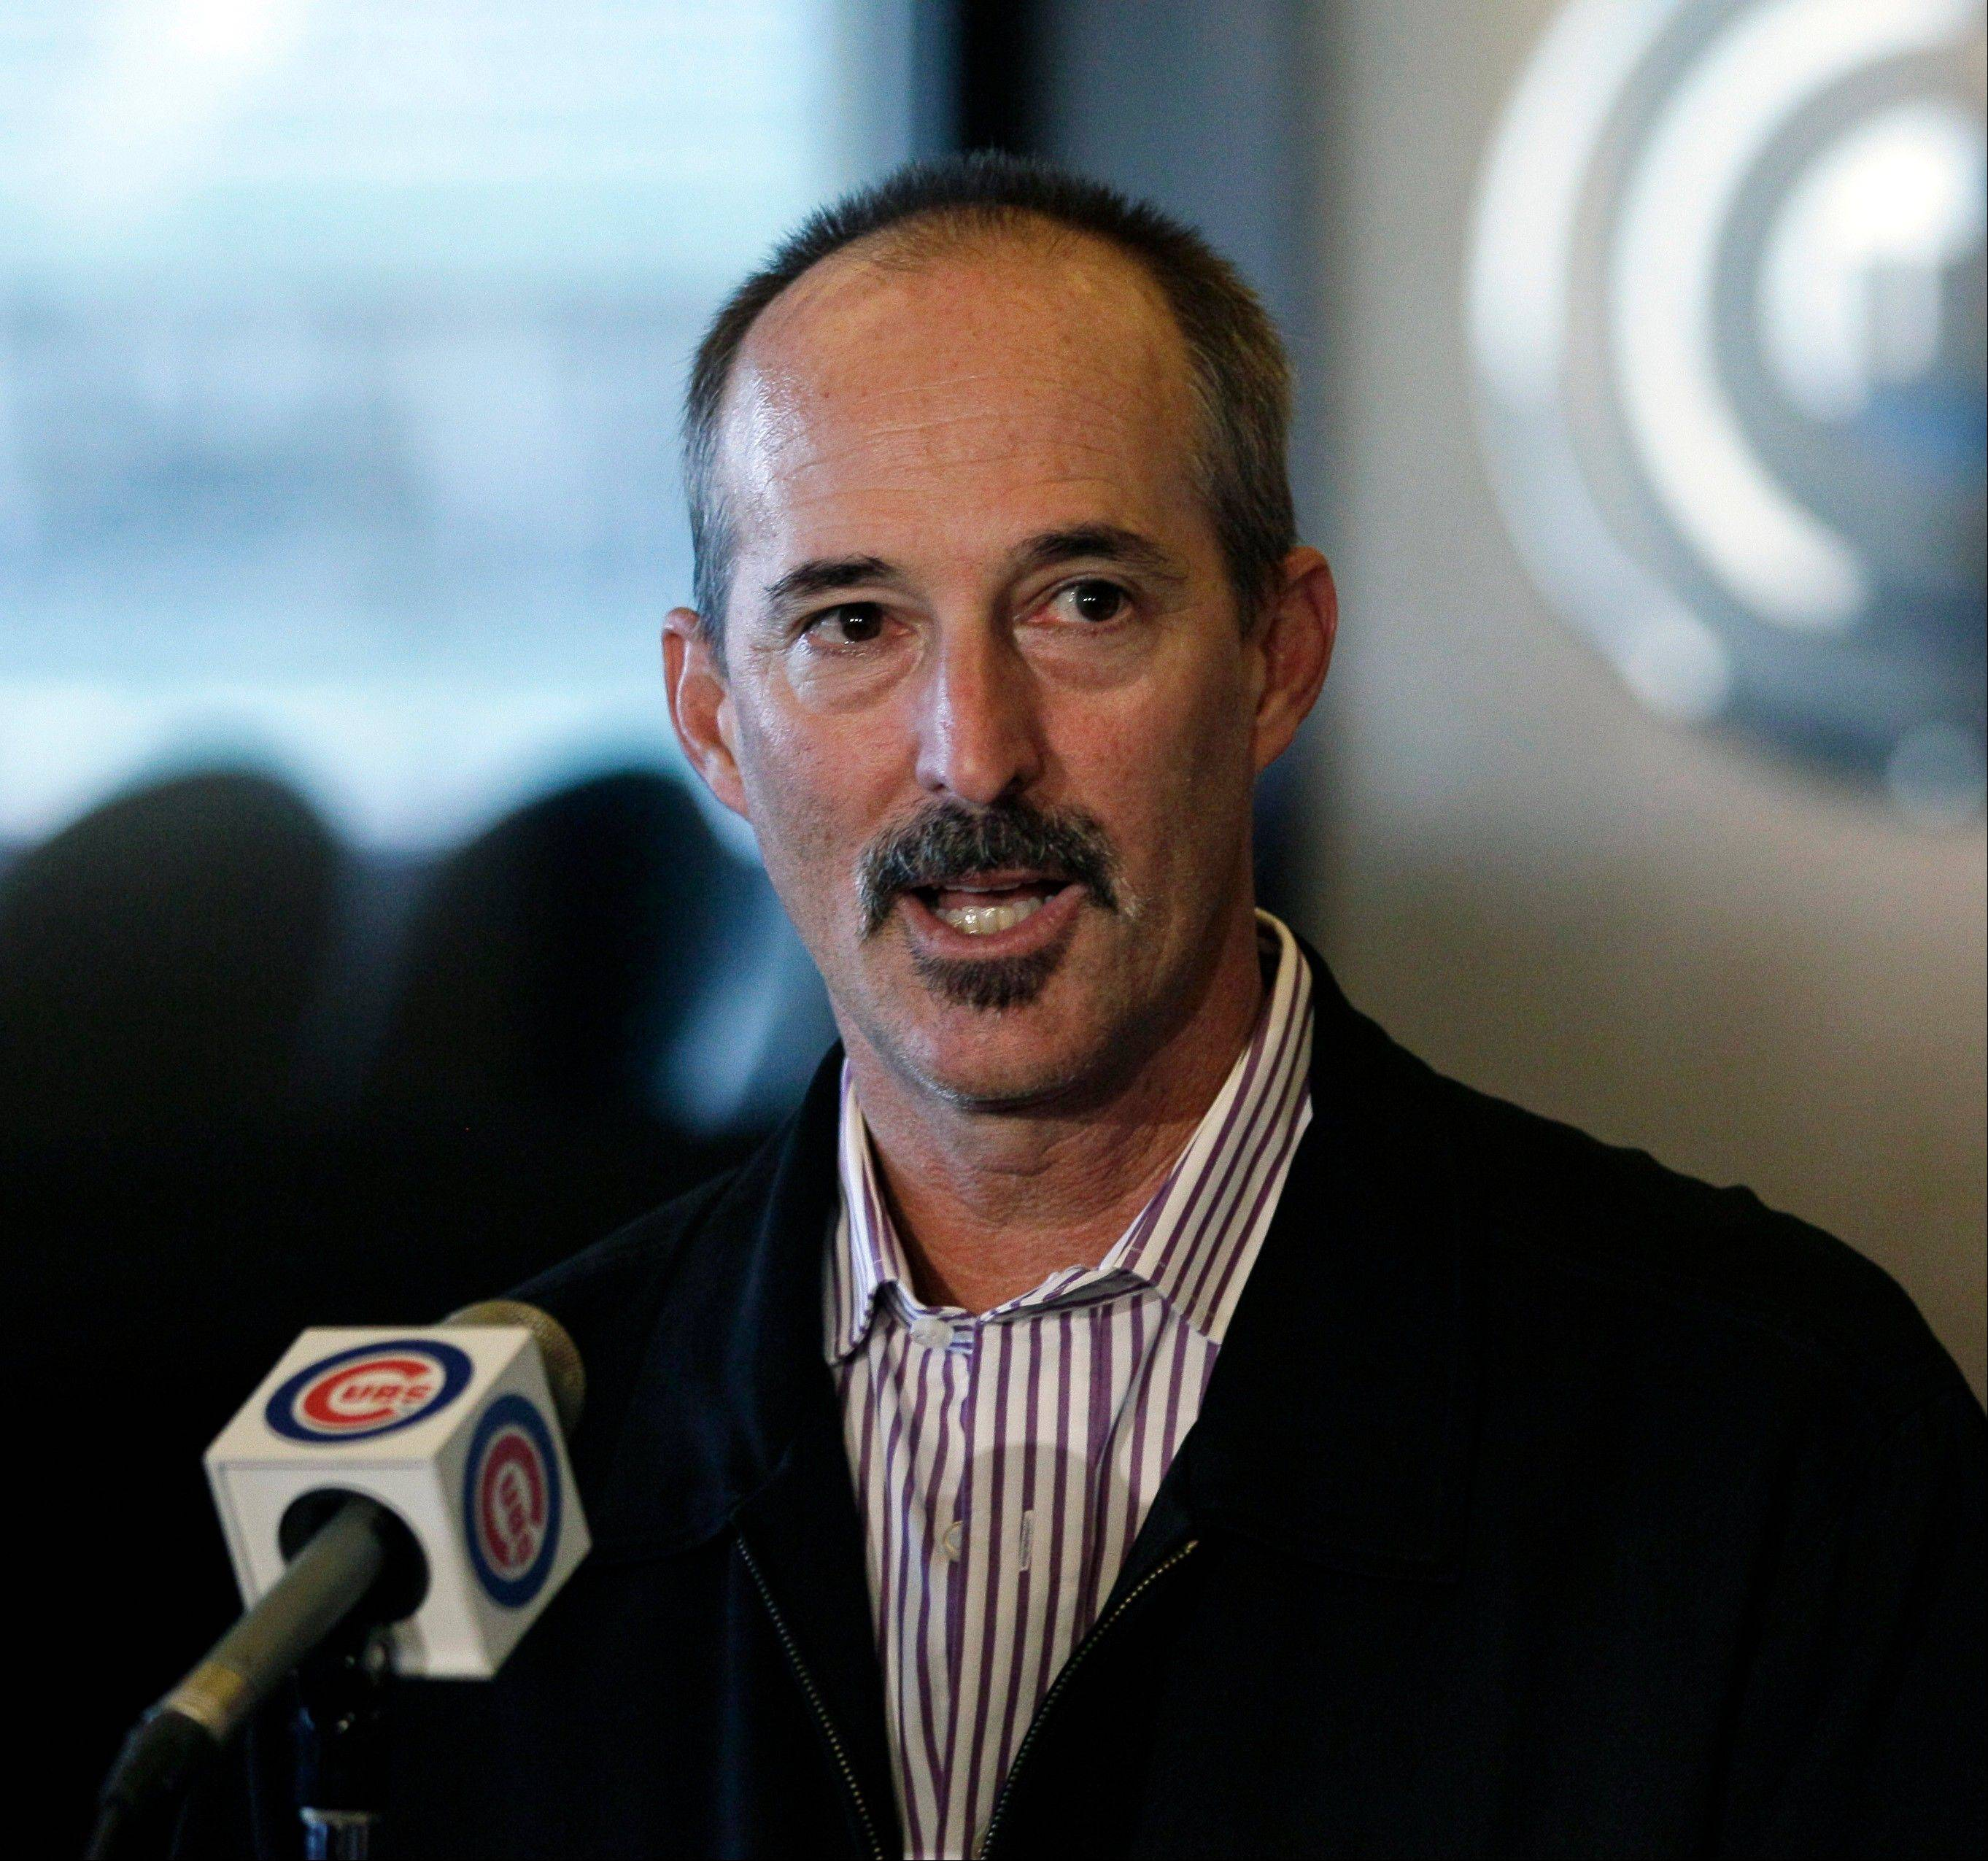 Texas Rangers pitching coach Mike Maddux speaks at a news conference following his interview Wednesday for the manager position with the Chicago Cubs at Wrigley Field.